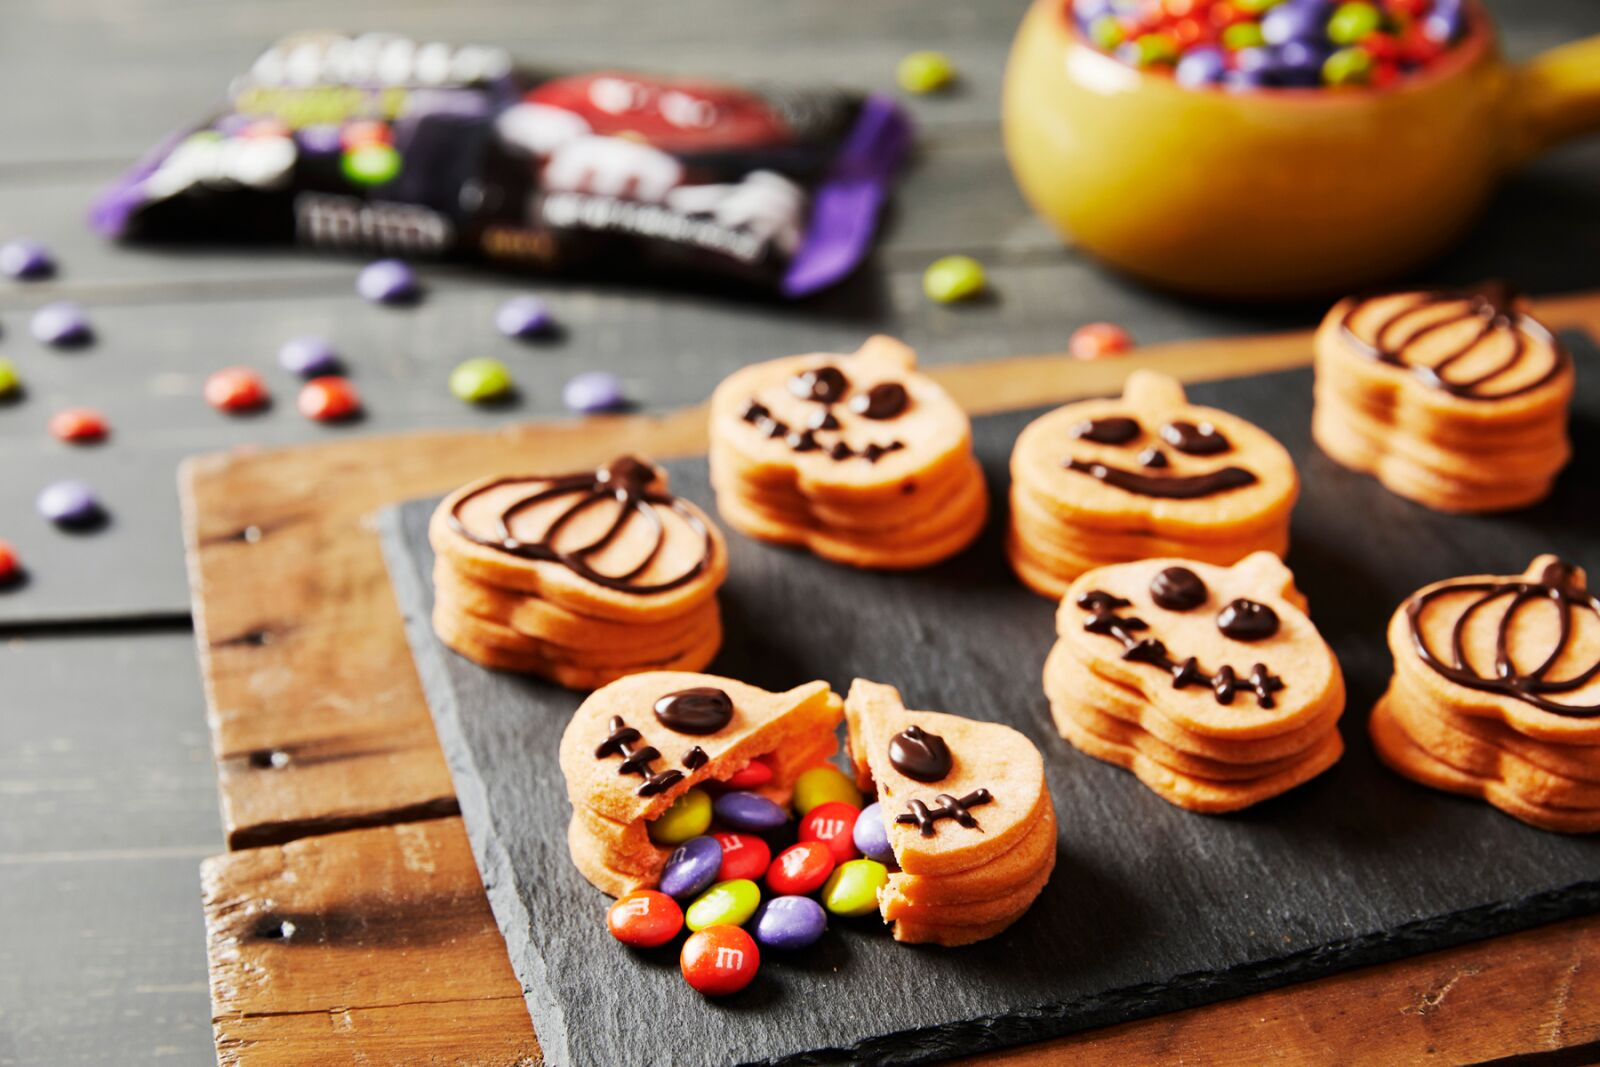 Ghoul's Mix Explosion Pumpkin Cookies are Halloween scarily good